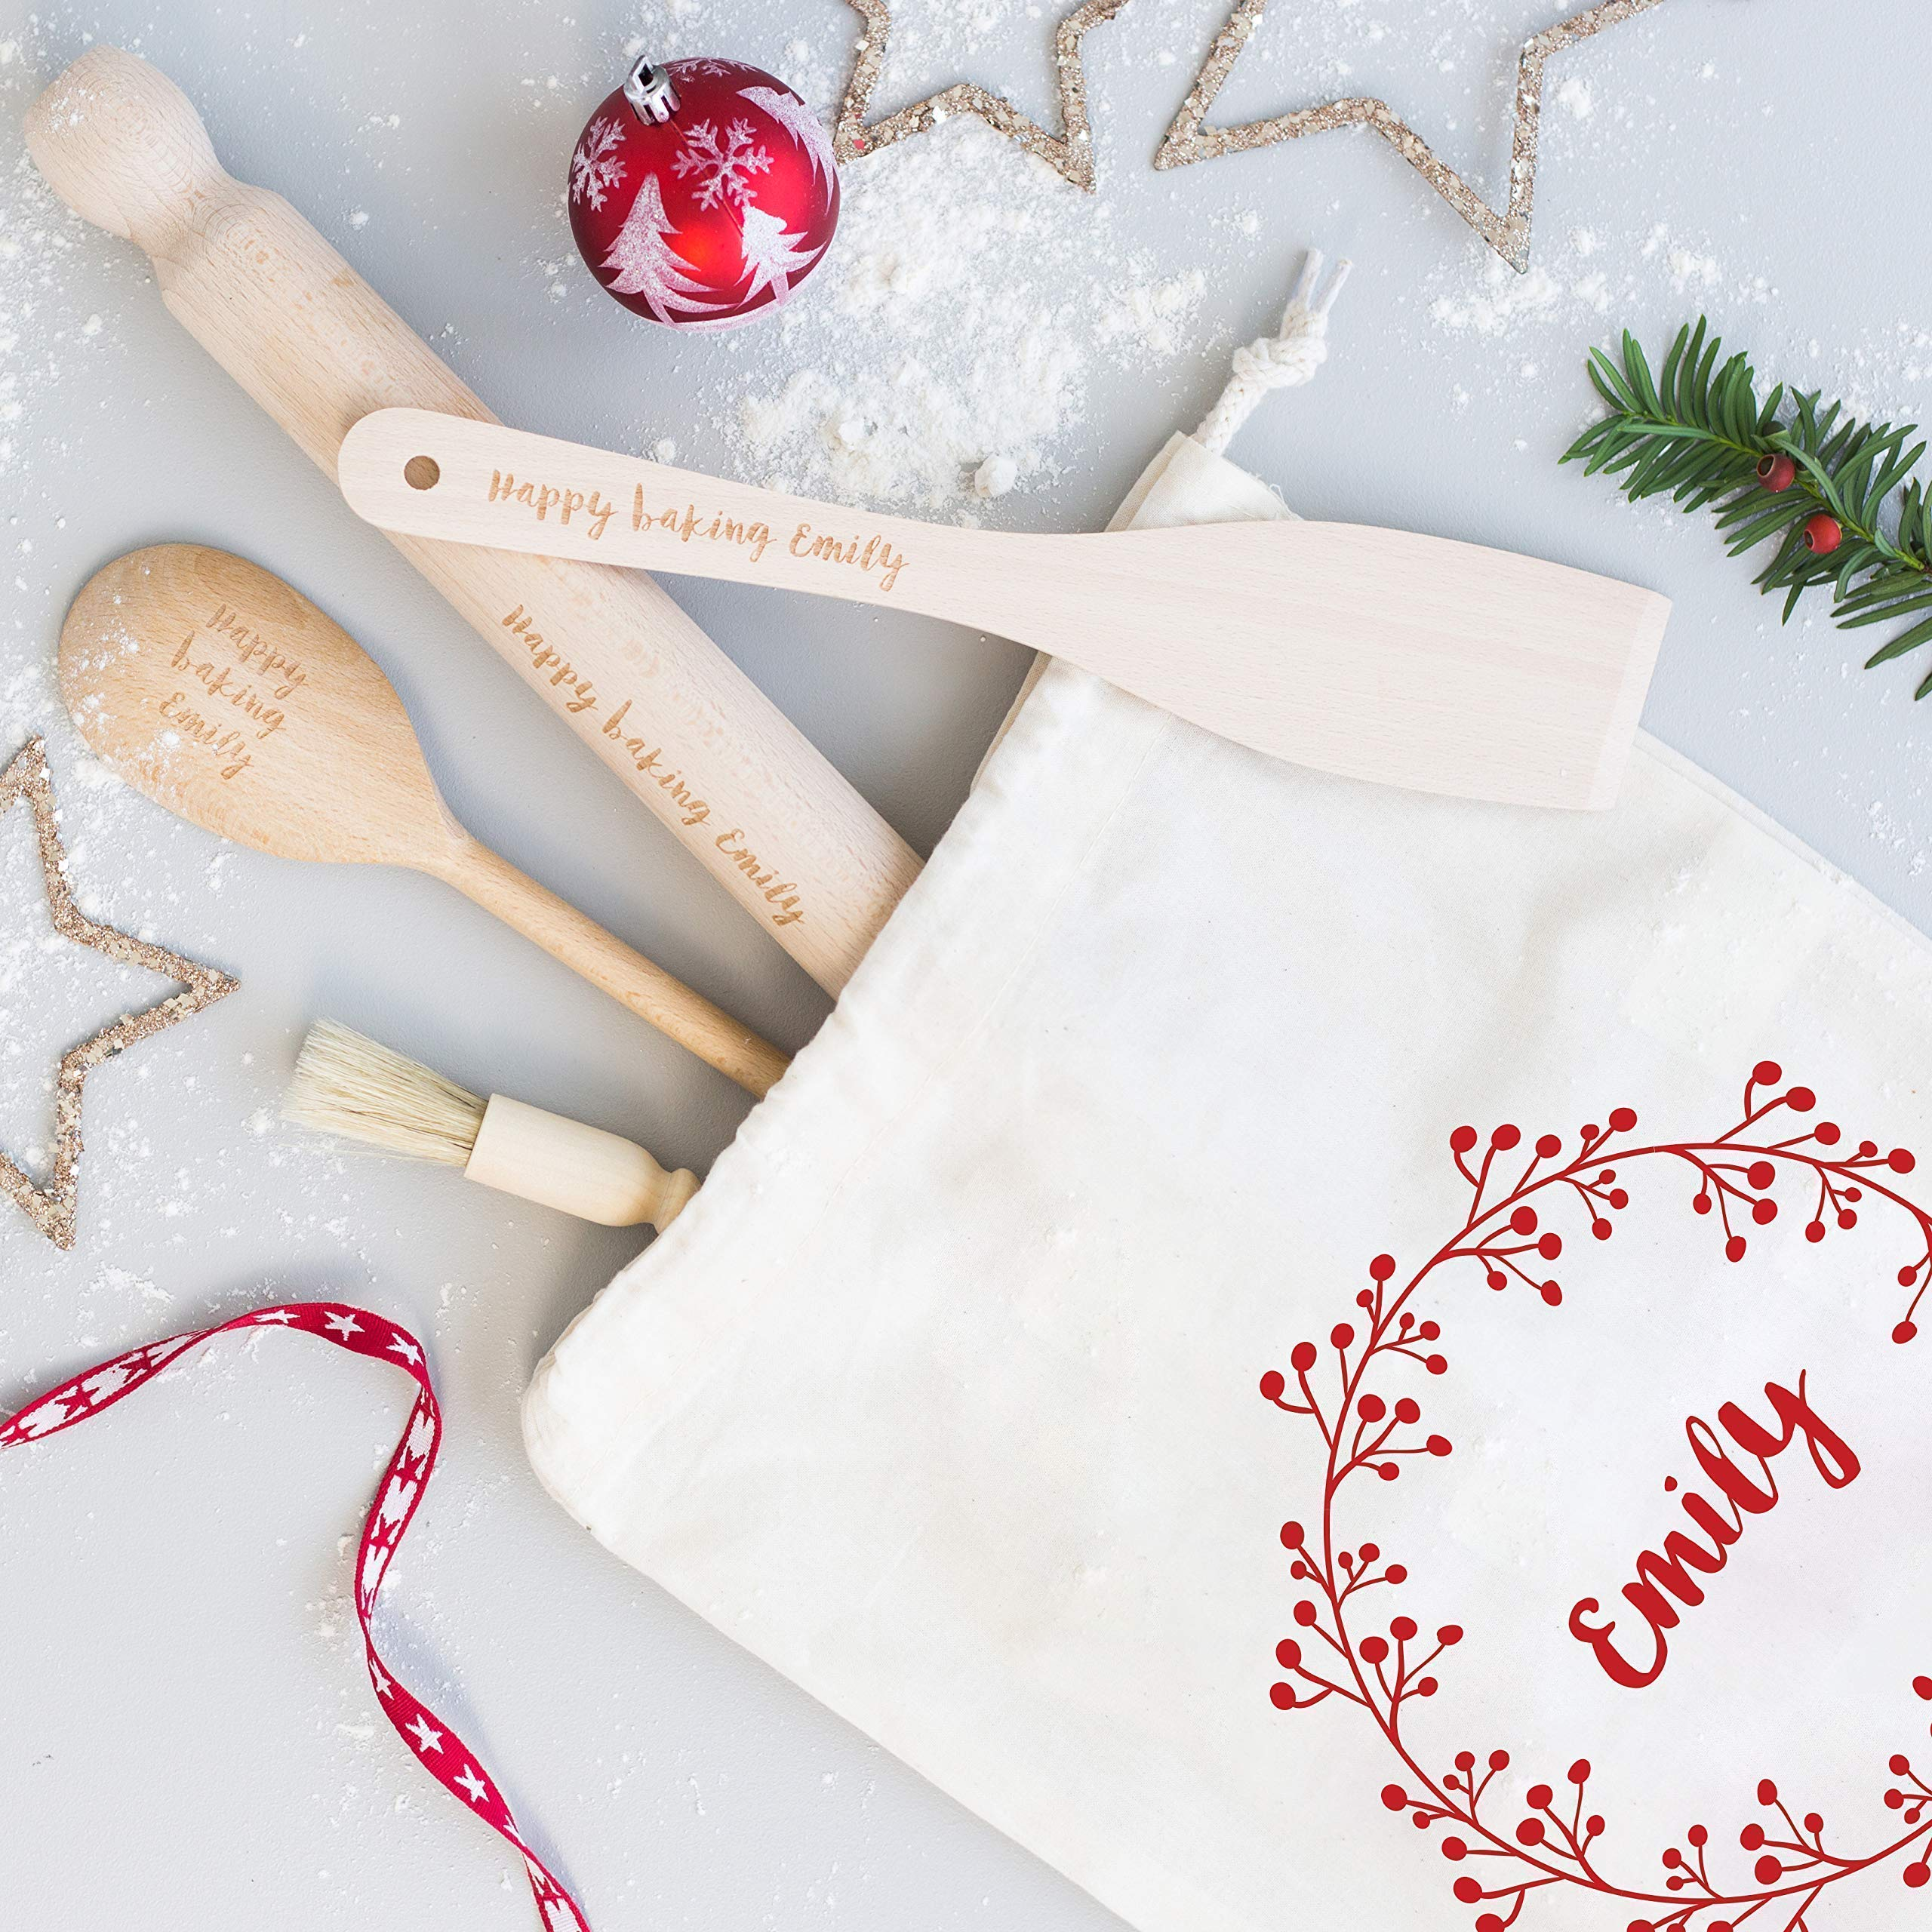 Baking Set Personalised Baking Gift Personalised Baking Set Cotton Bag Cooking Utensils Personalized Kitchen Personalised Bag Buy Online In Dominican Republic At Dominican Desertcart Com Productid 64827833